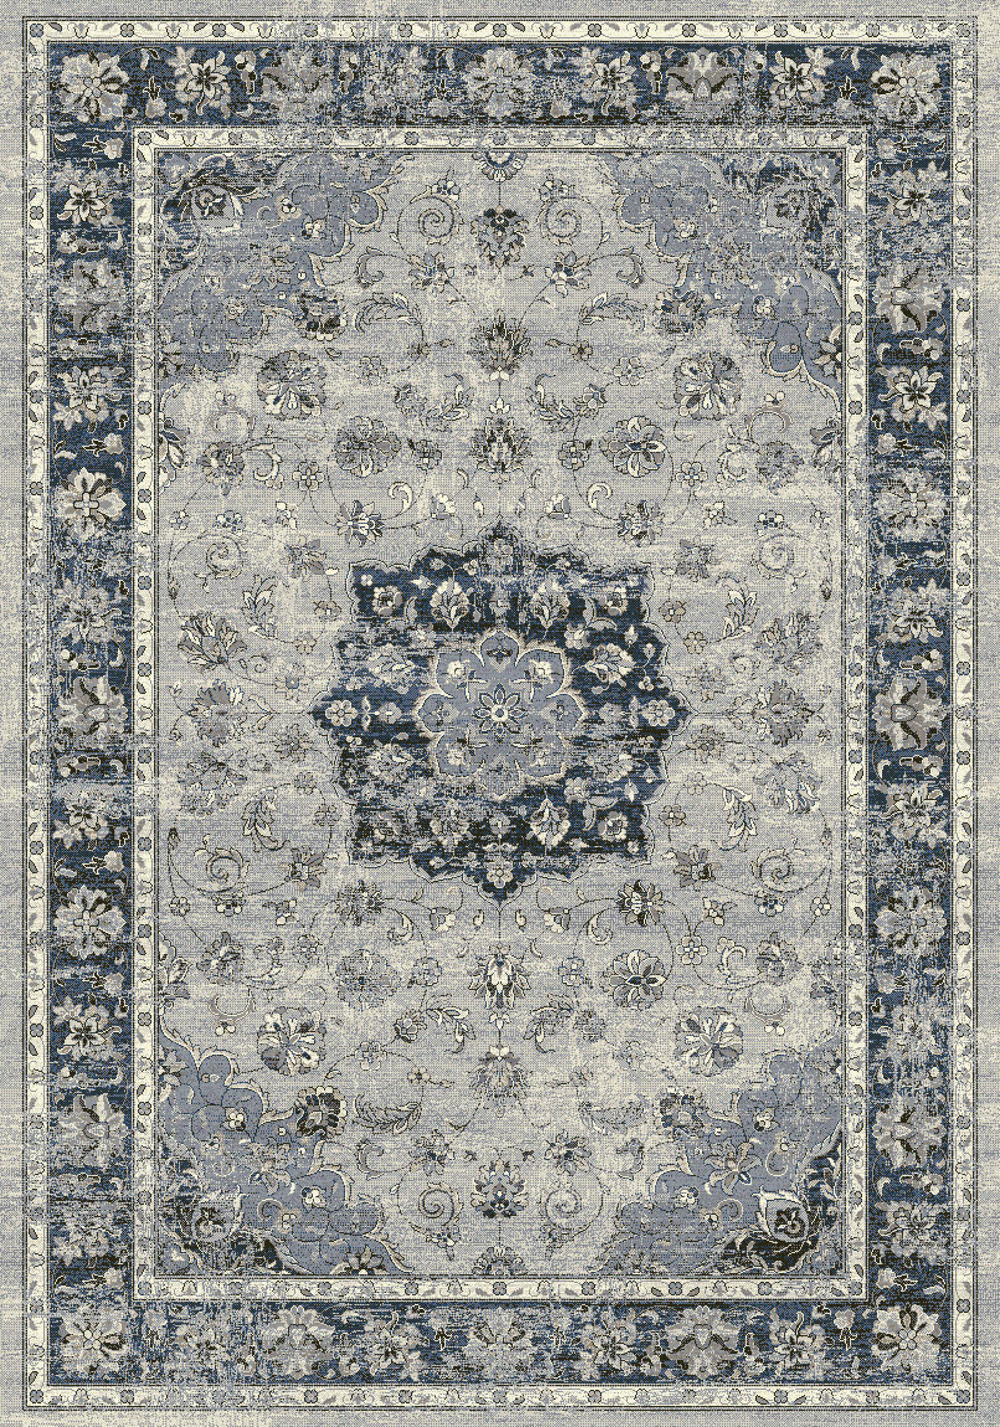 Dynamic ANCIENT GARDEN 57559 SILVER/BLUE Rug